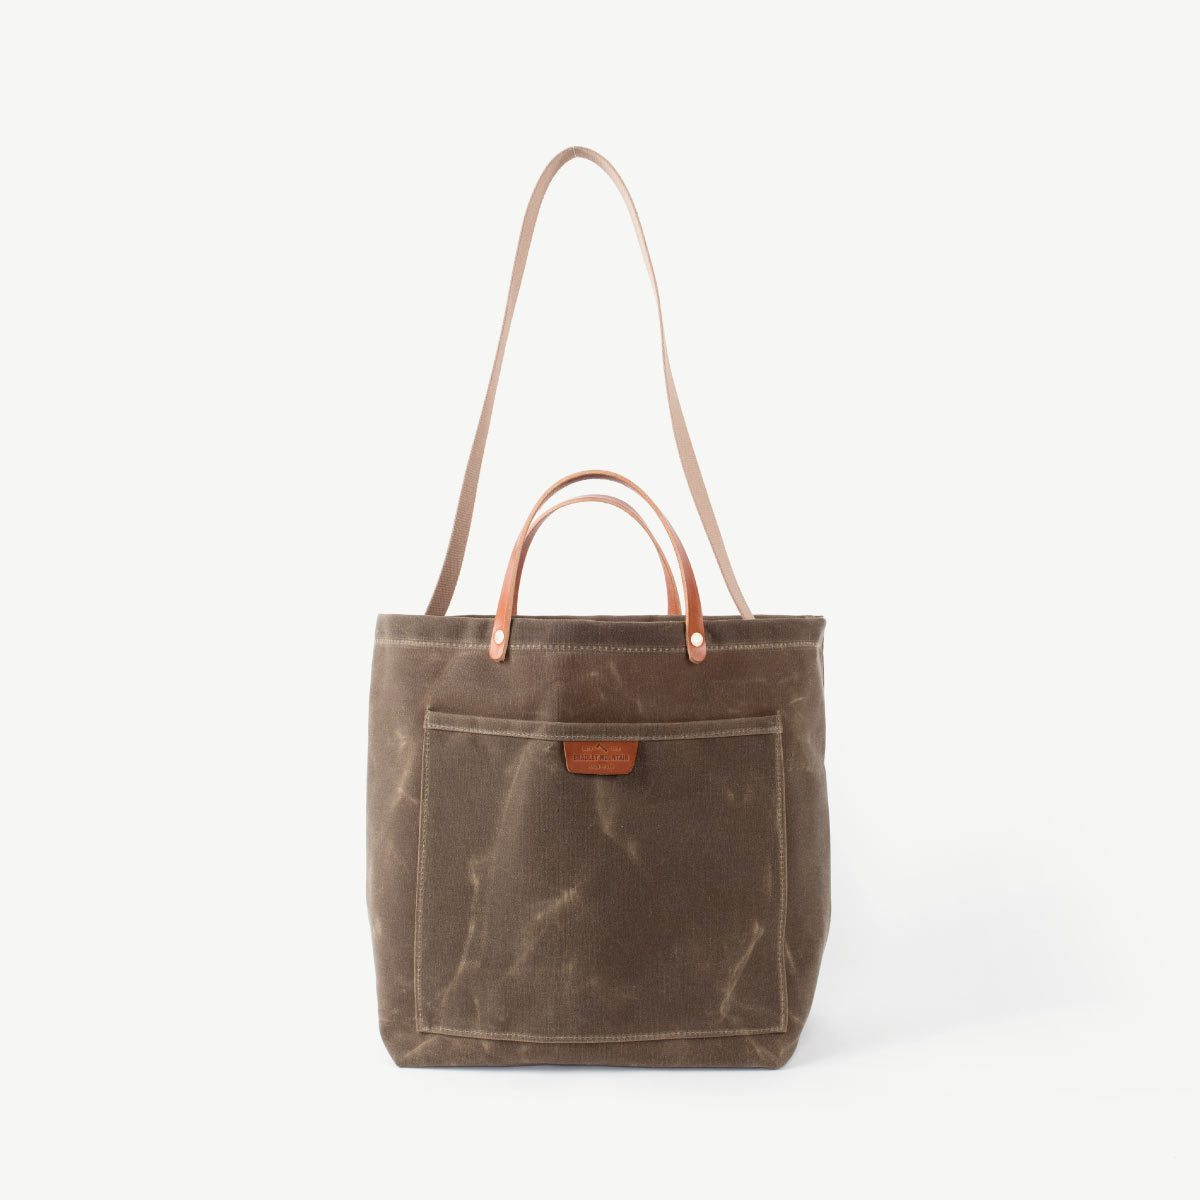 Bradley Mountain Cole Tote - Field Tan